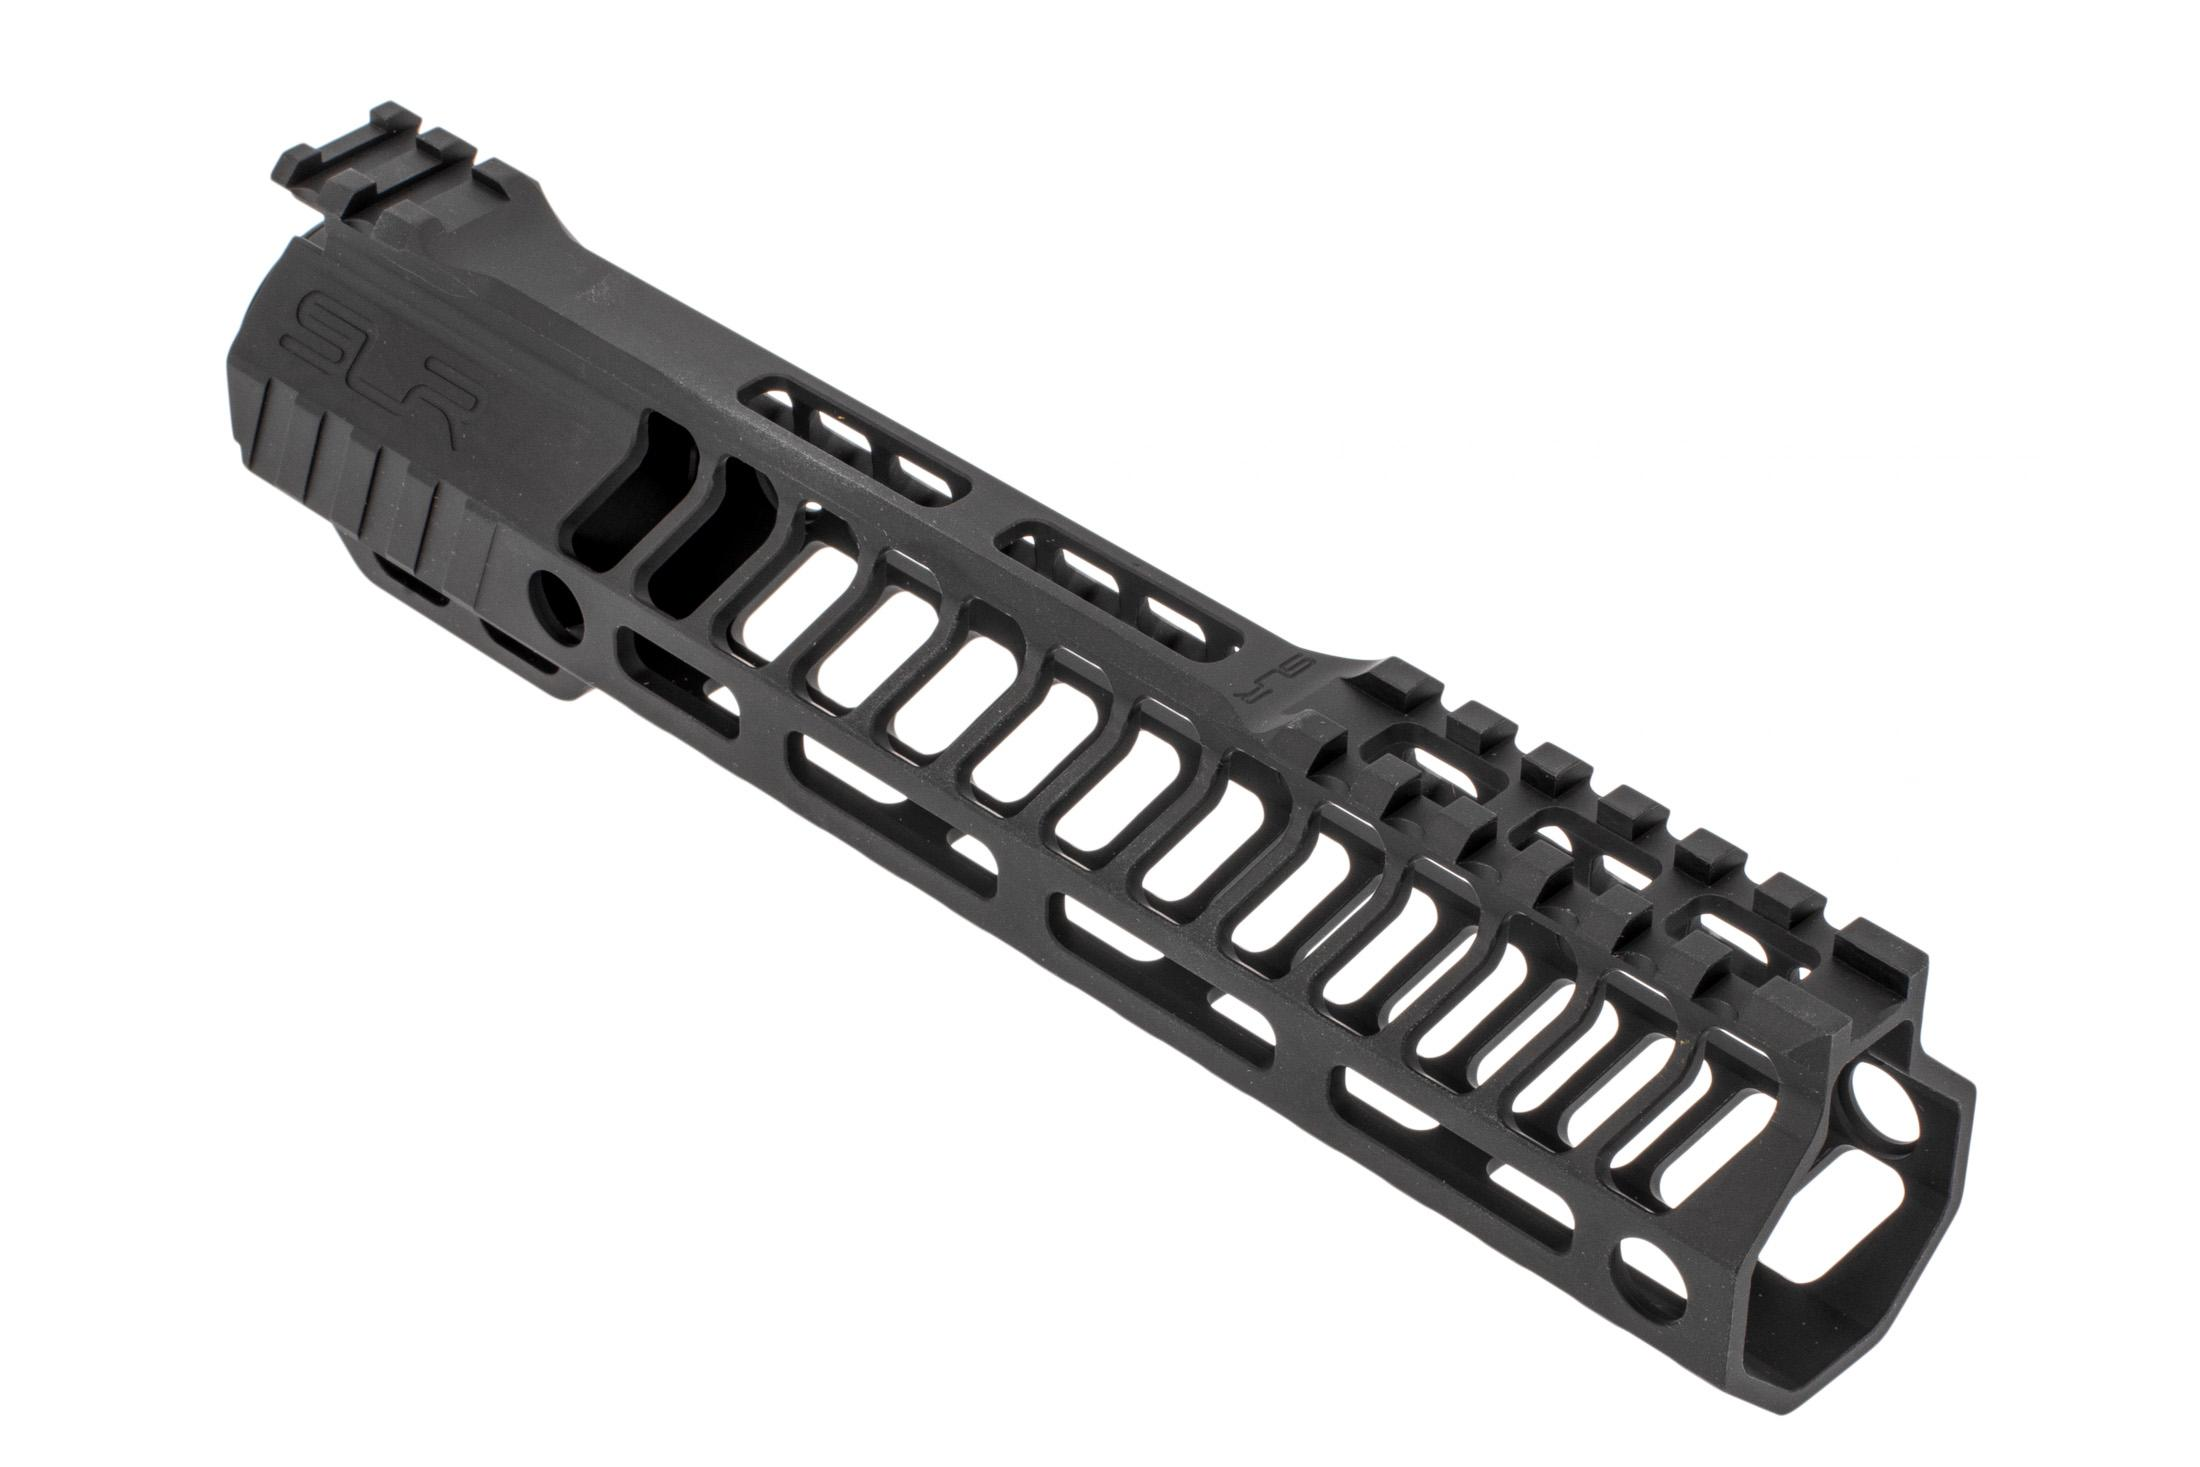 SLR Rifleworks HELIX series 9.0 M-LOK rail for the AR-15 with interrupted top rail with black anodized finish.